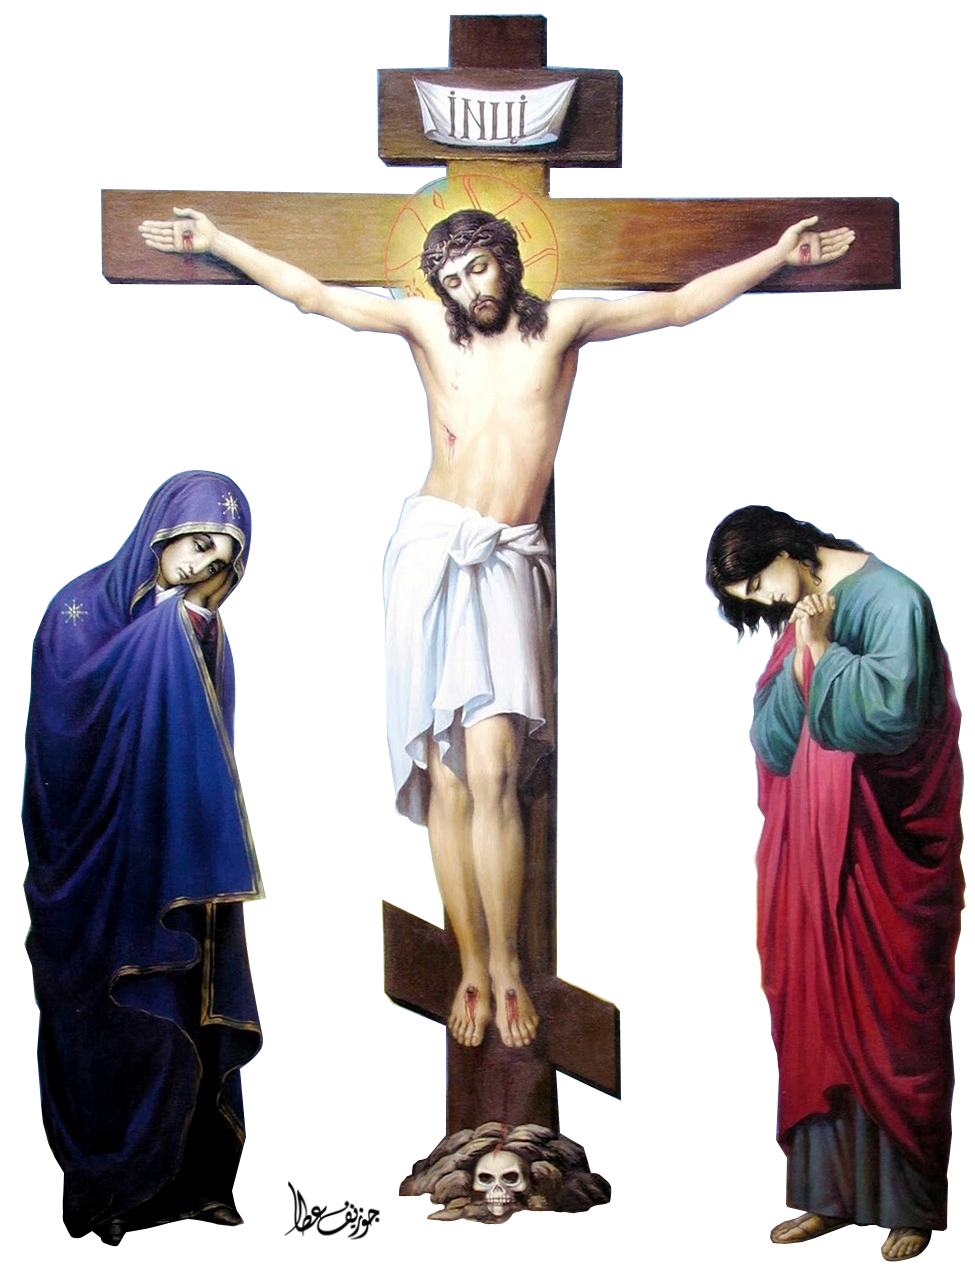 jesus christ crucifixion by joeatta78 on deviantart